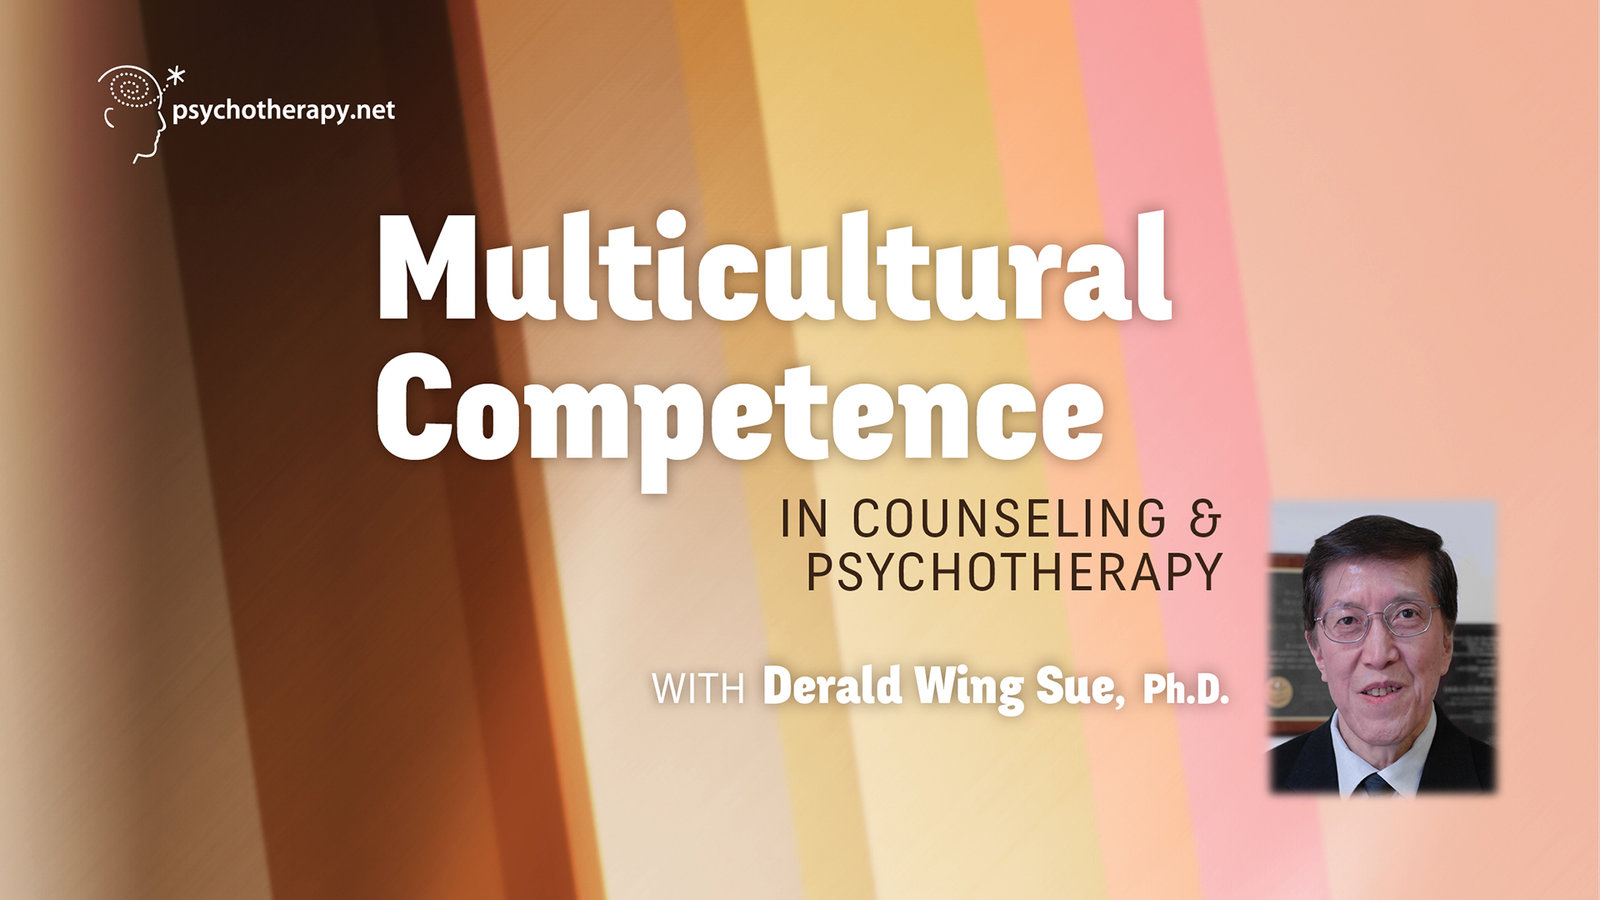 Multicultural Competence in Counseling & Psychotherapy